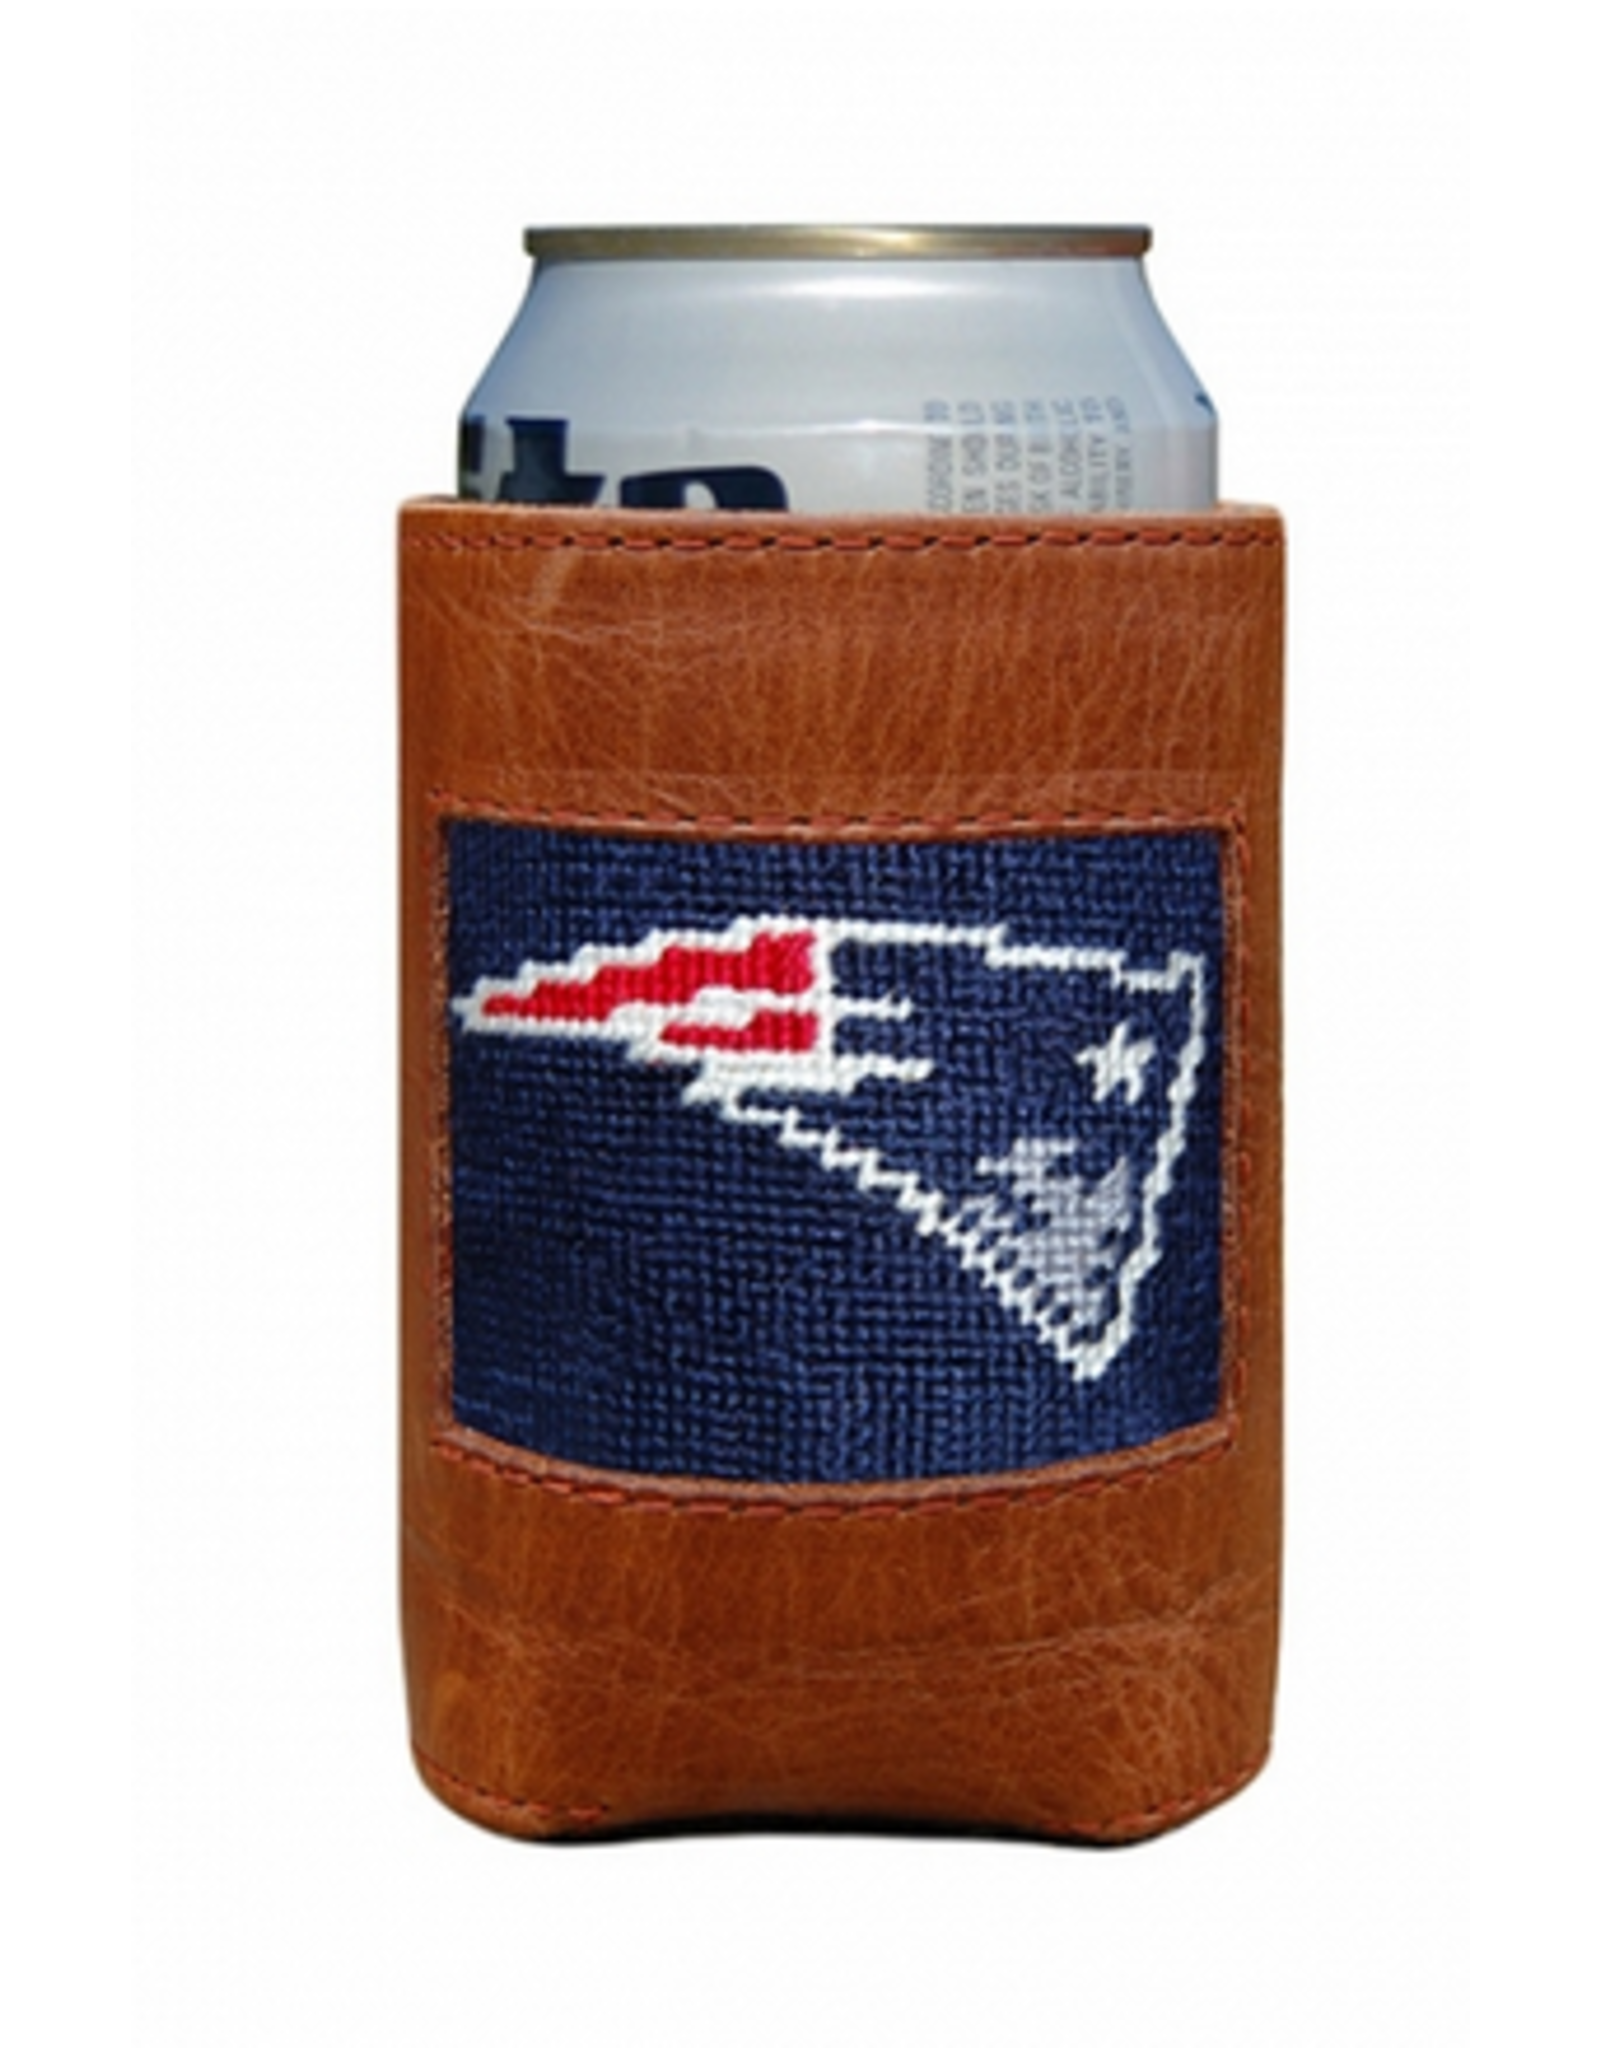 Smathers & Branson Patriots Can Cooler